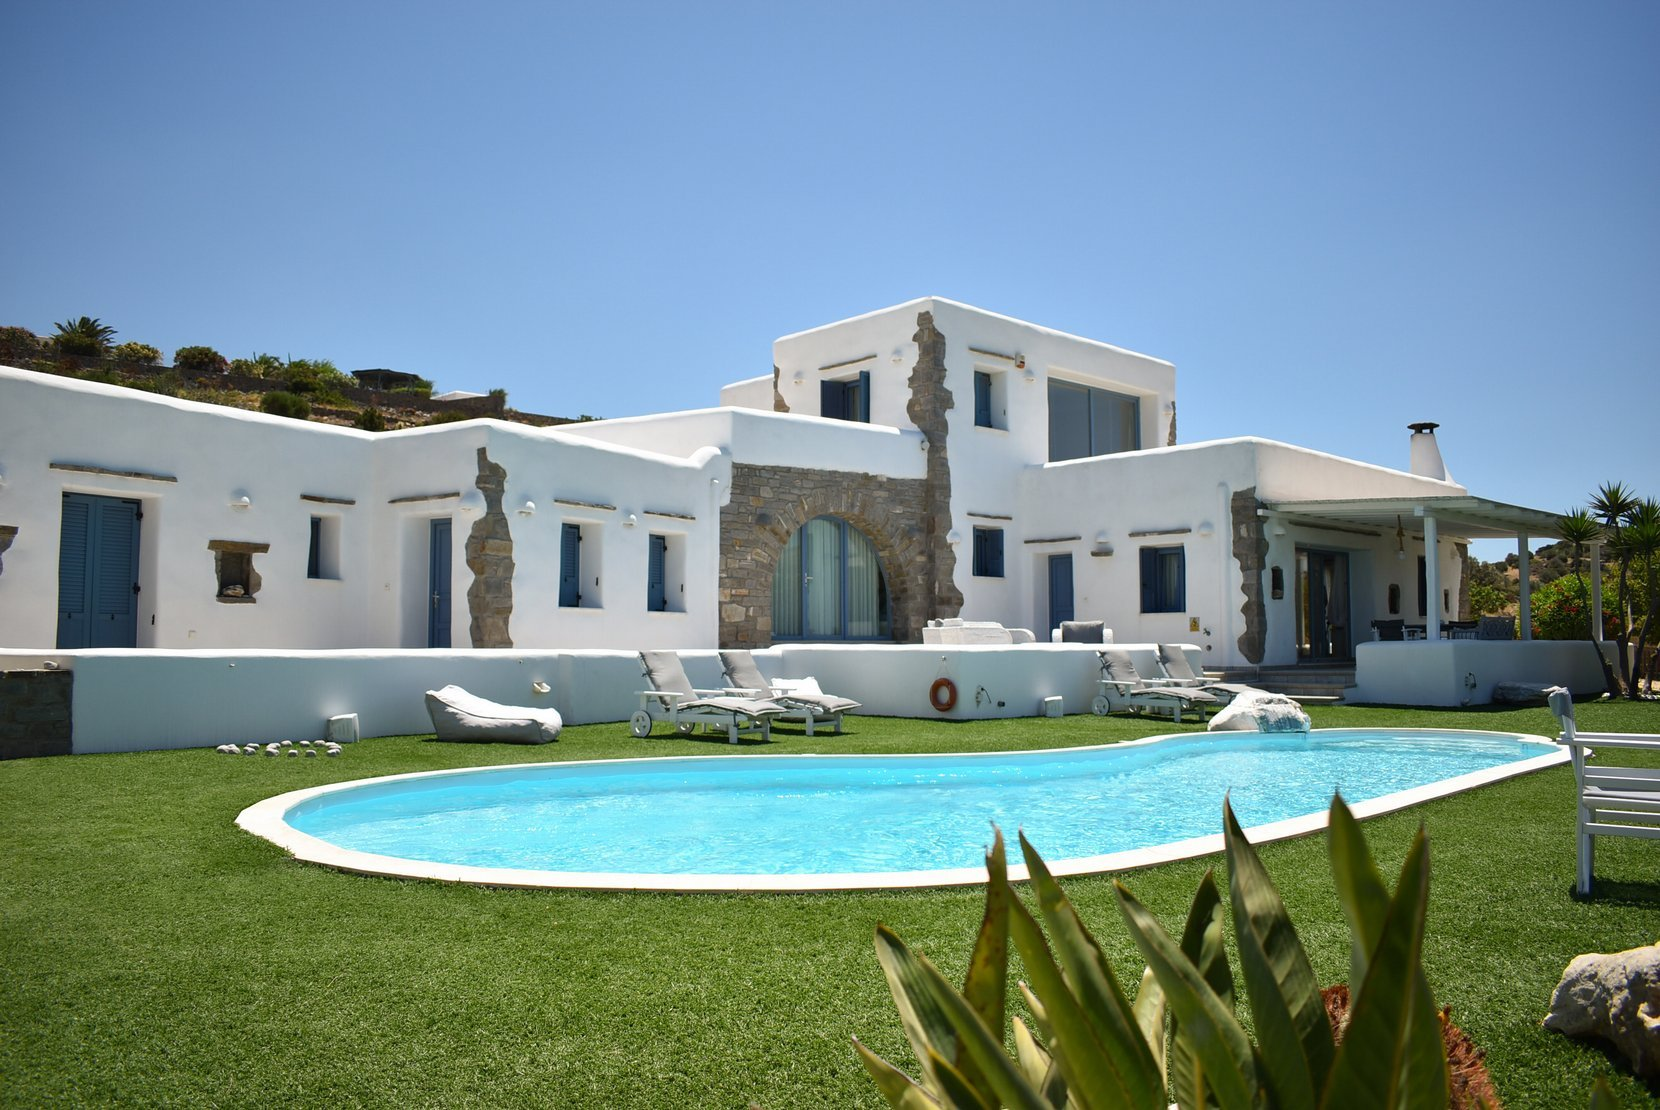 For sale DETACHED HOUSE 2.200.000€ PAROS - SOTIRES (code I-14652)